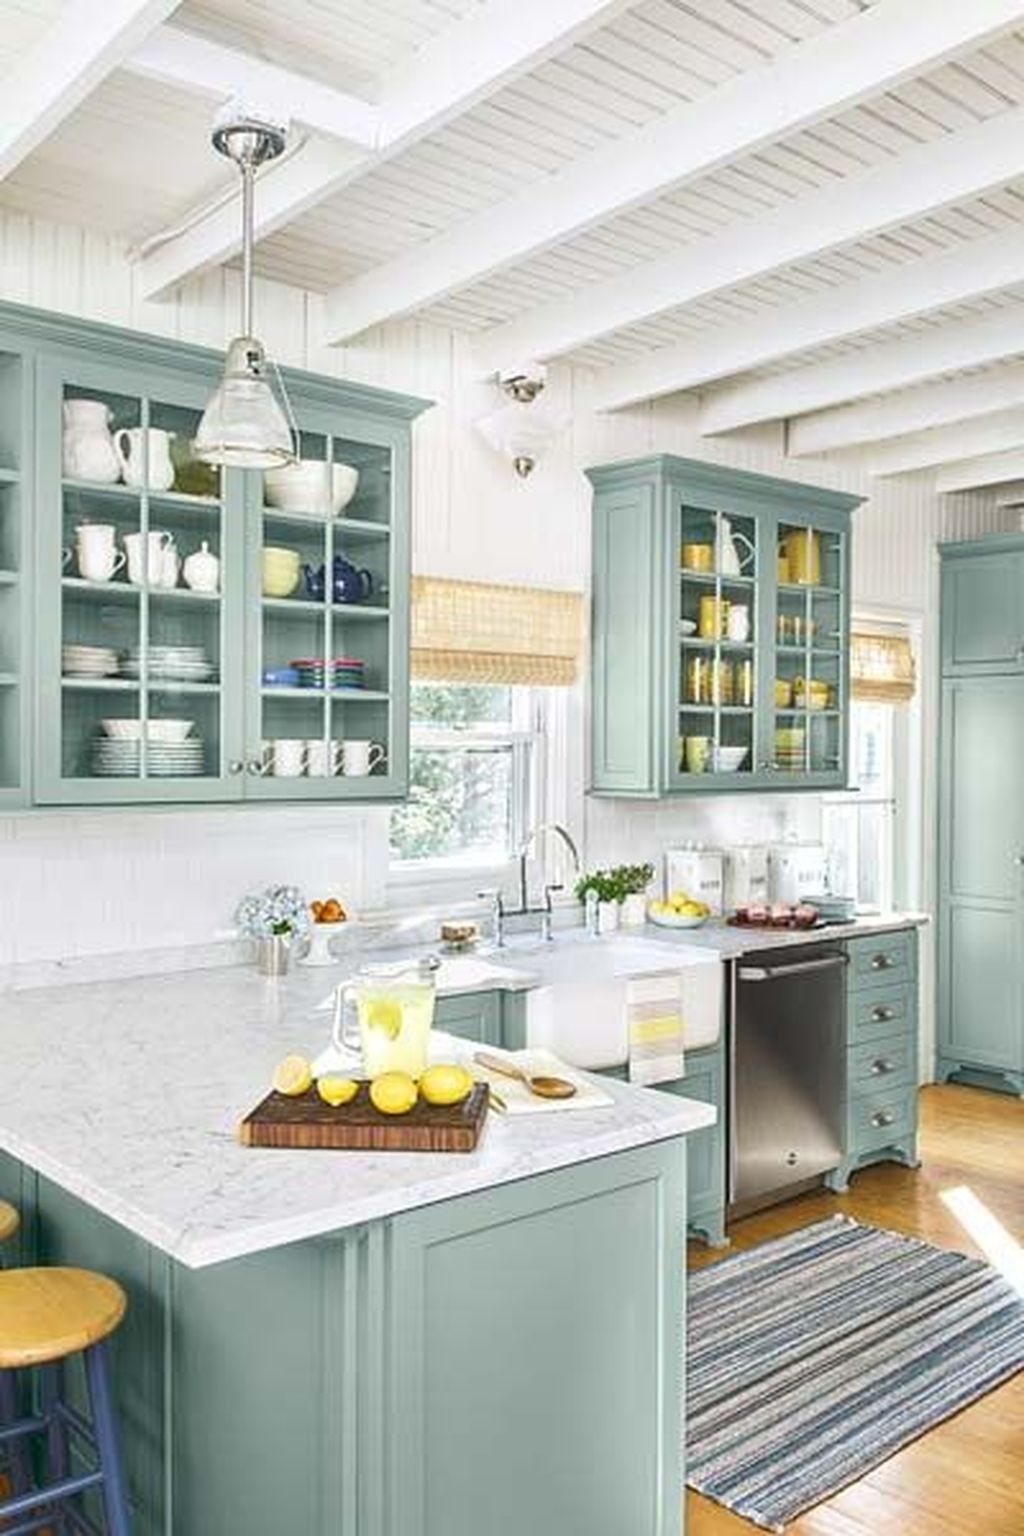 Comfy Kitchen Remodel Ideas For Small Kitchen11